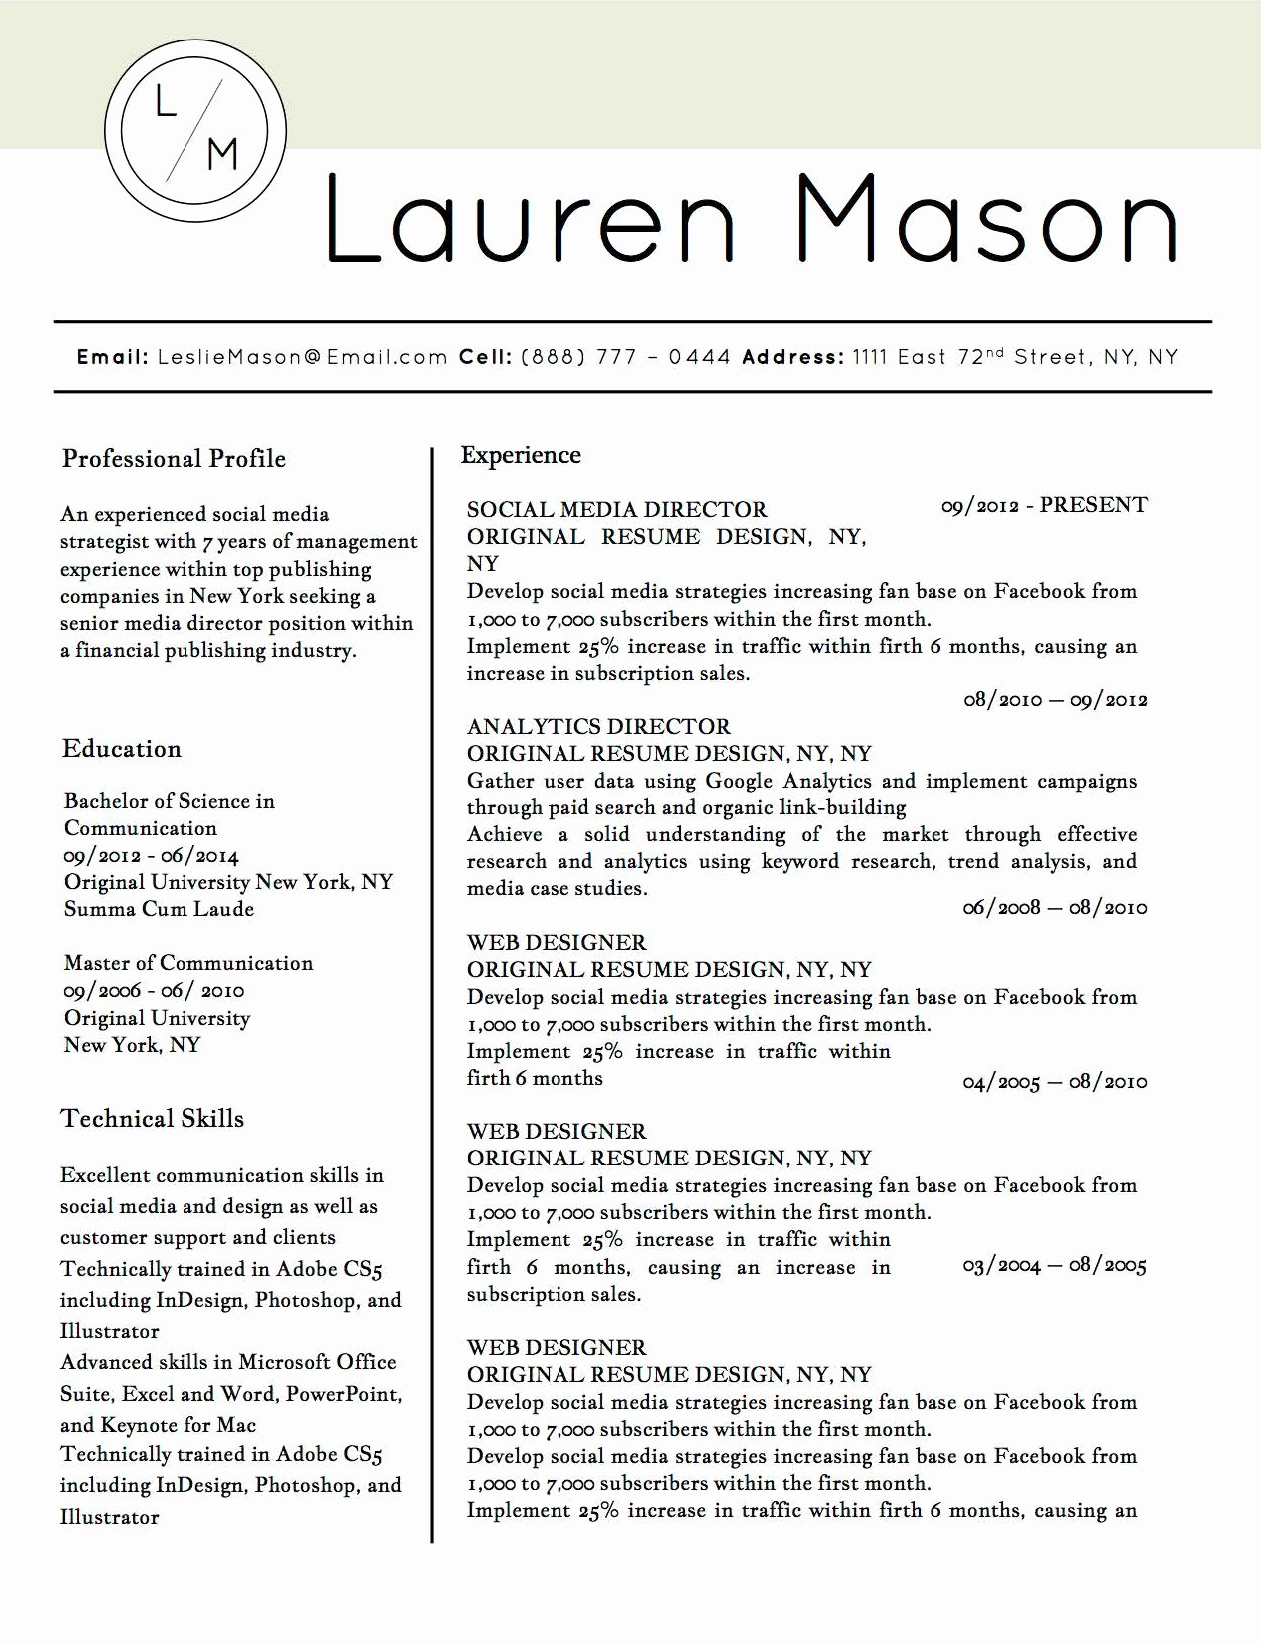 Professional Resume Templates Microsoft Word Awesome Job Winning Resume Templates for Microsoft Word & Apple Pages